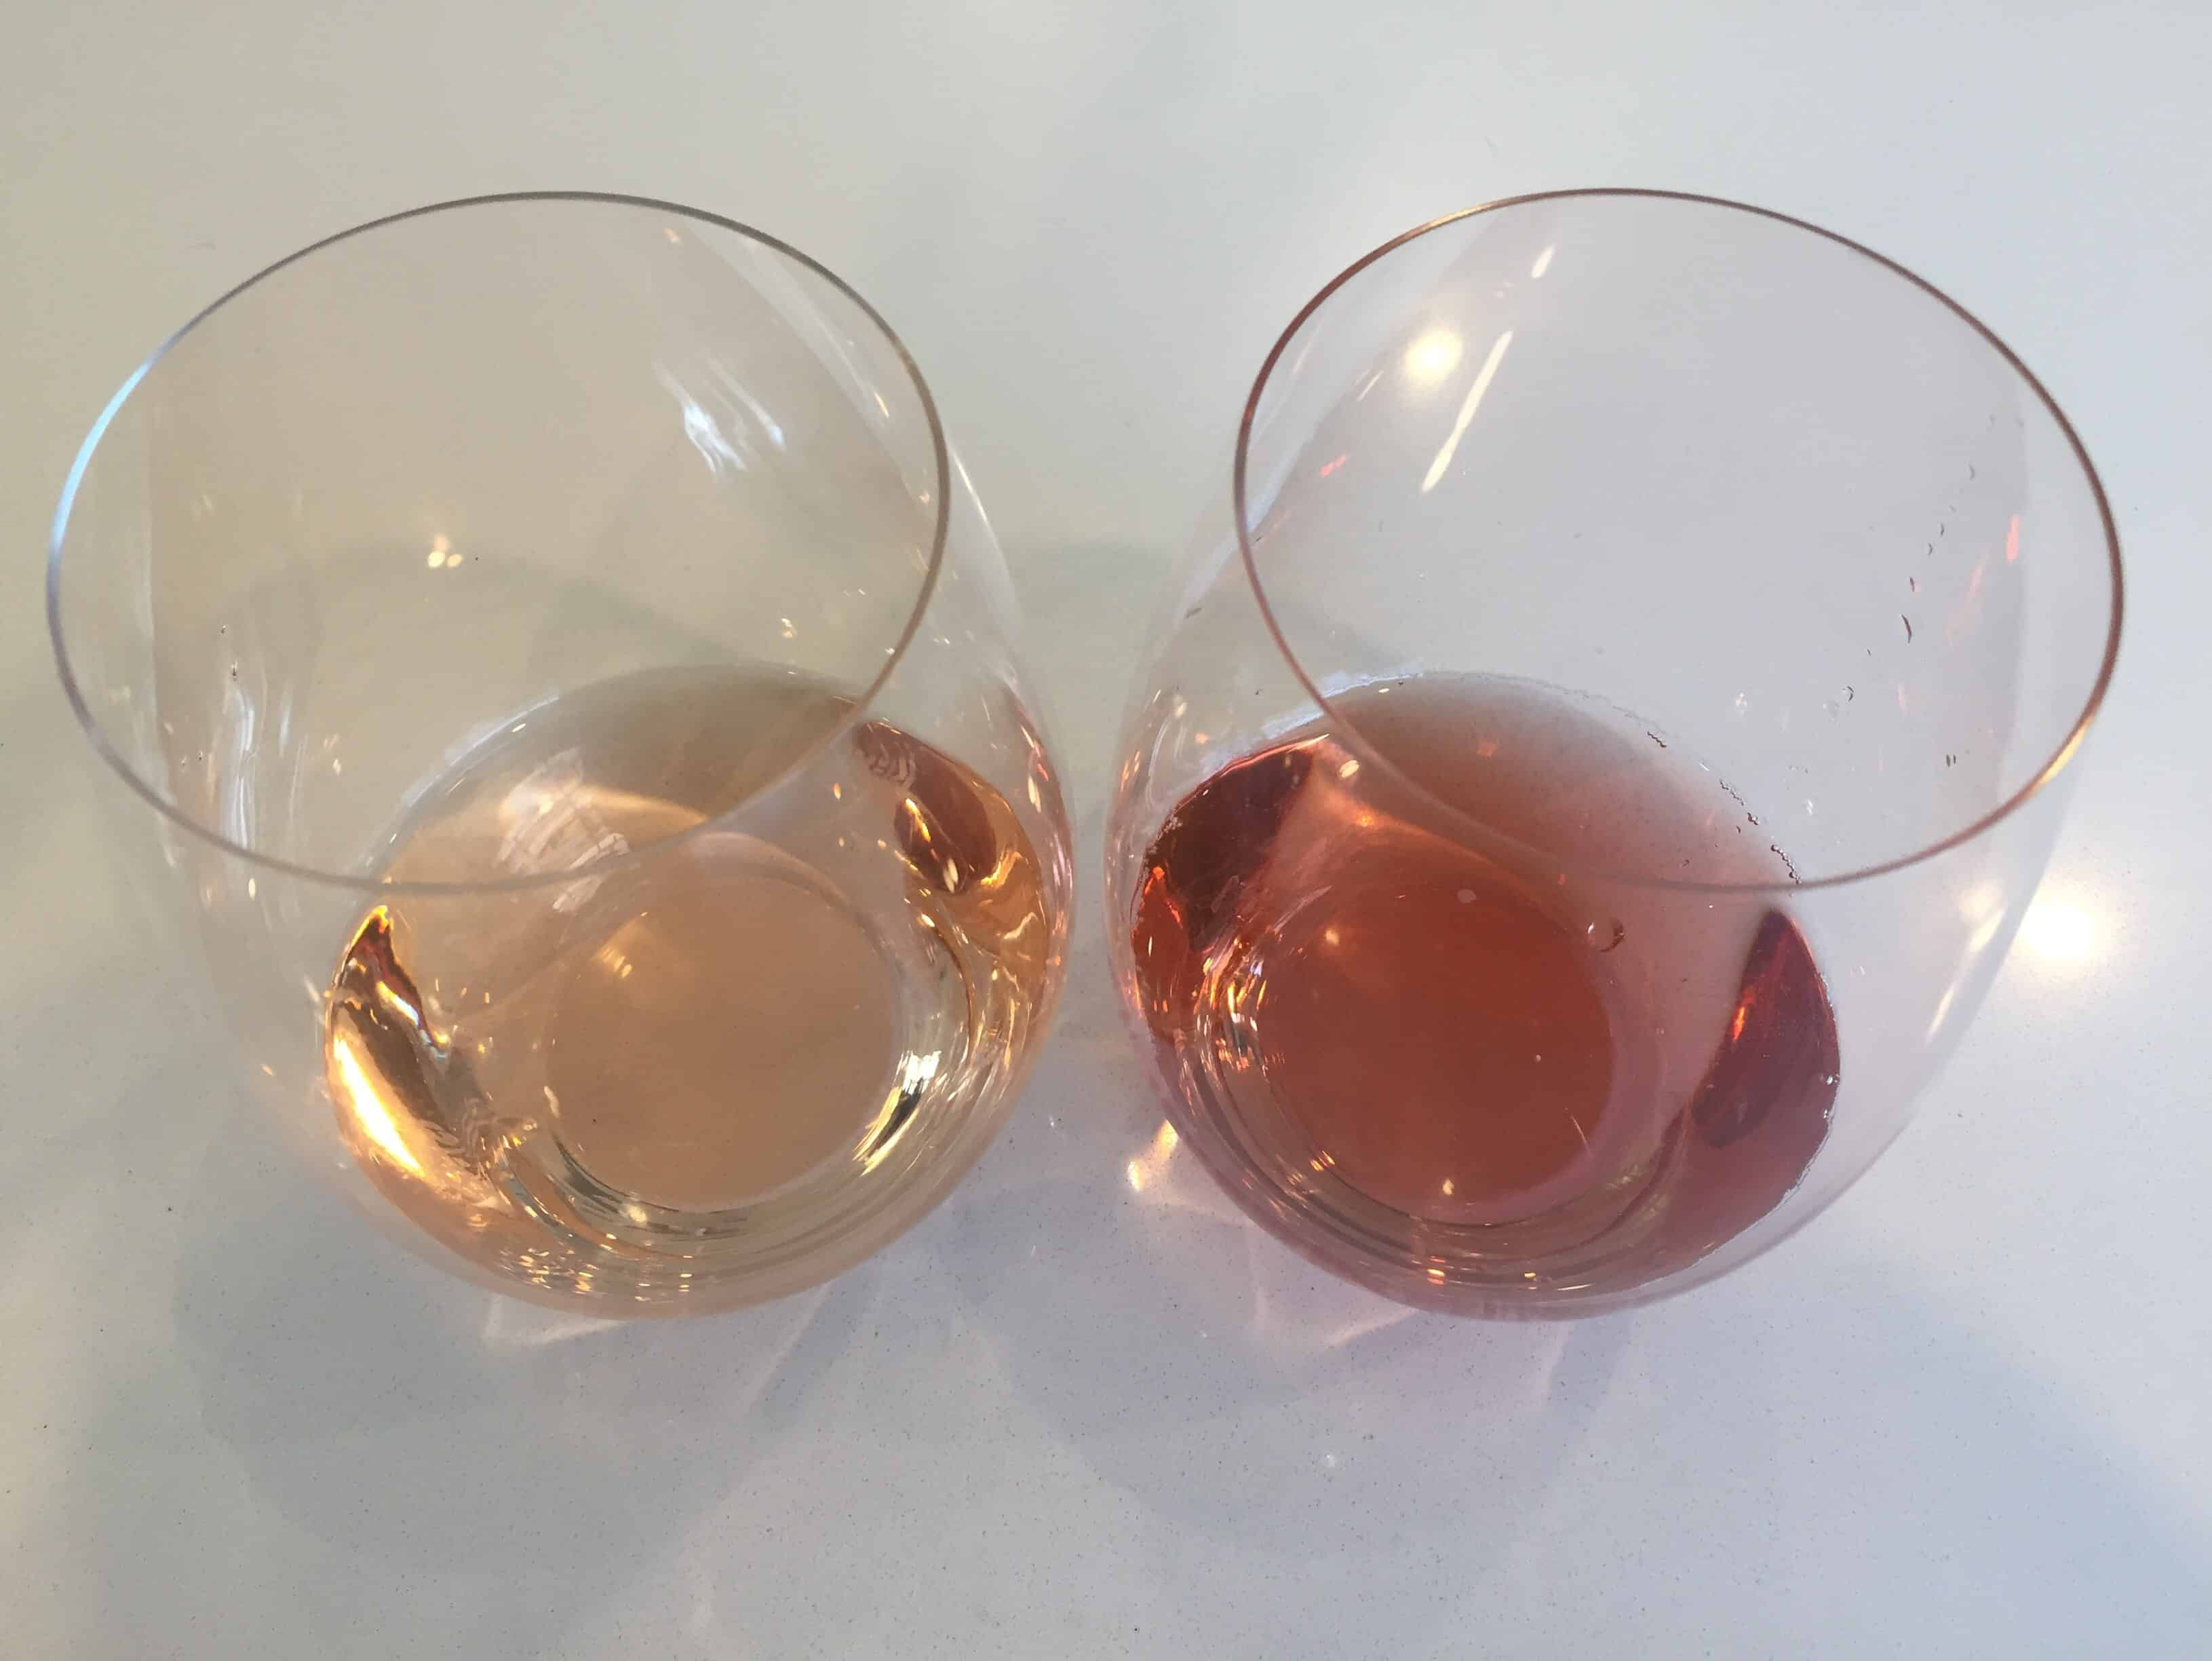 Two glasses of rose wine, contrasting the difference in color.